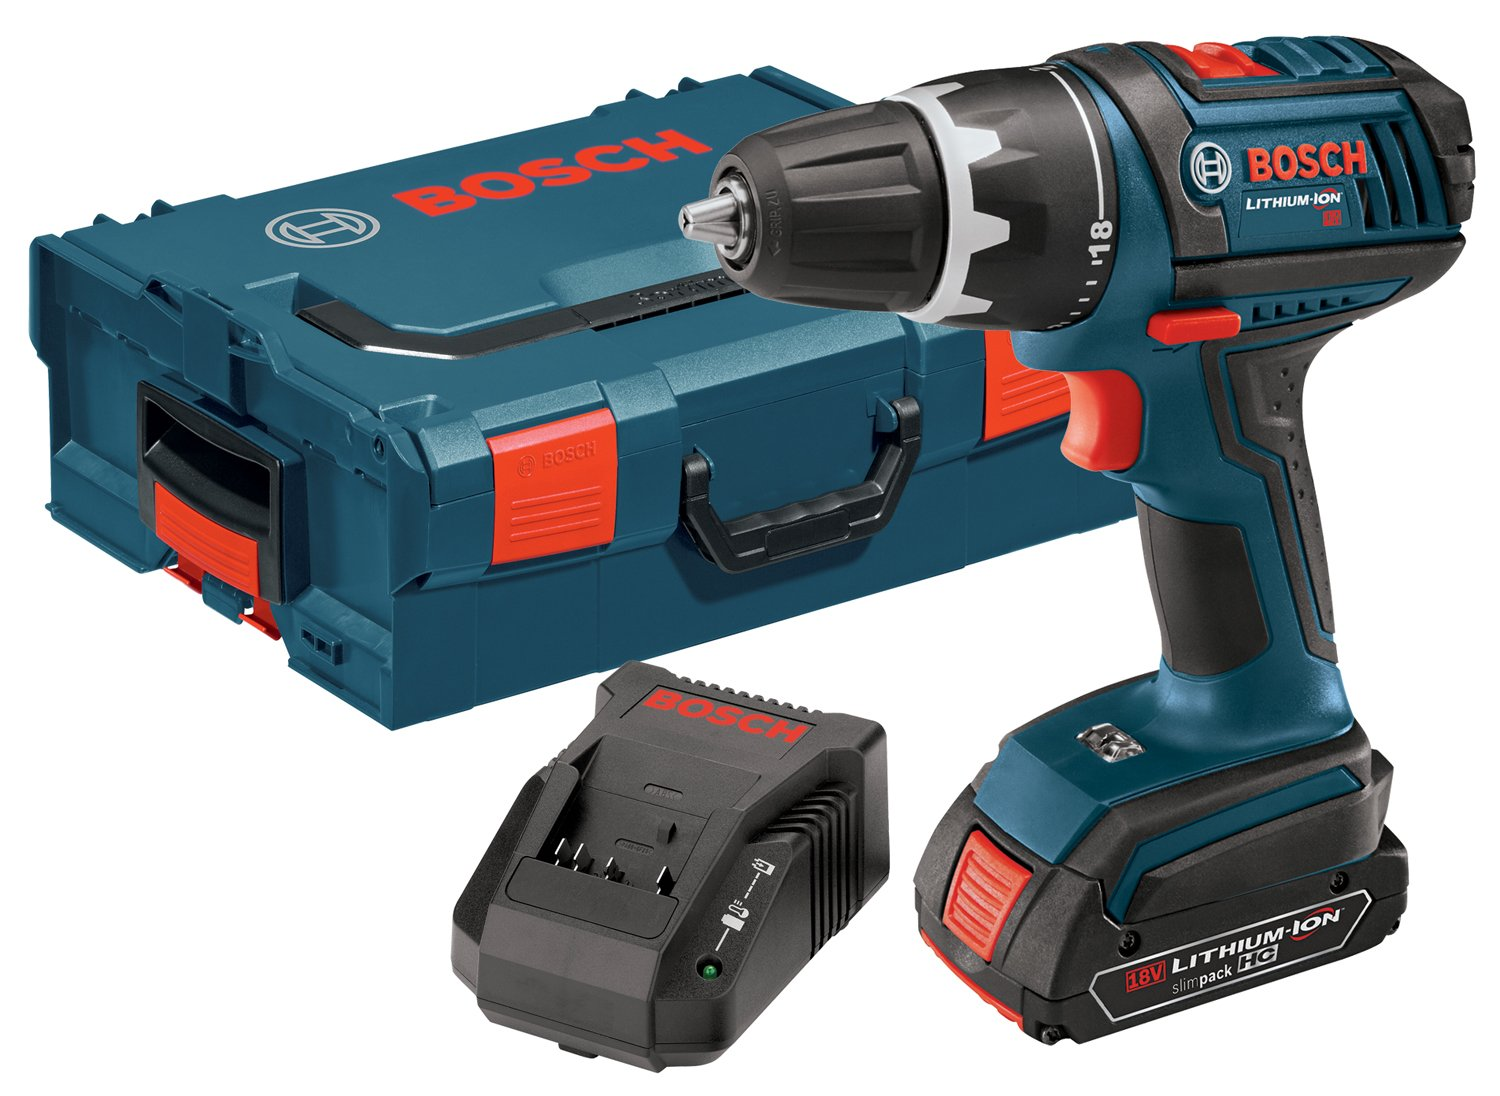 Bosch DDS181-102L 18-Volt Lithium-Ion 1/2-Inch Compact Tough Drill/Driver Kit with High Capacity Battery, Charger and L-BOXX-2 DDS181102L